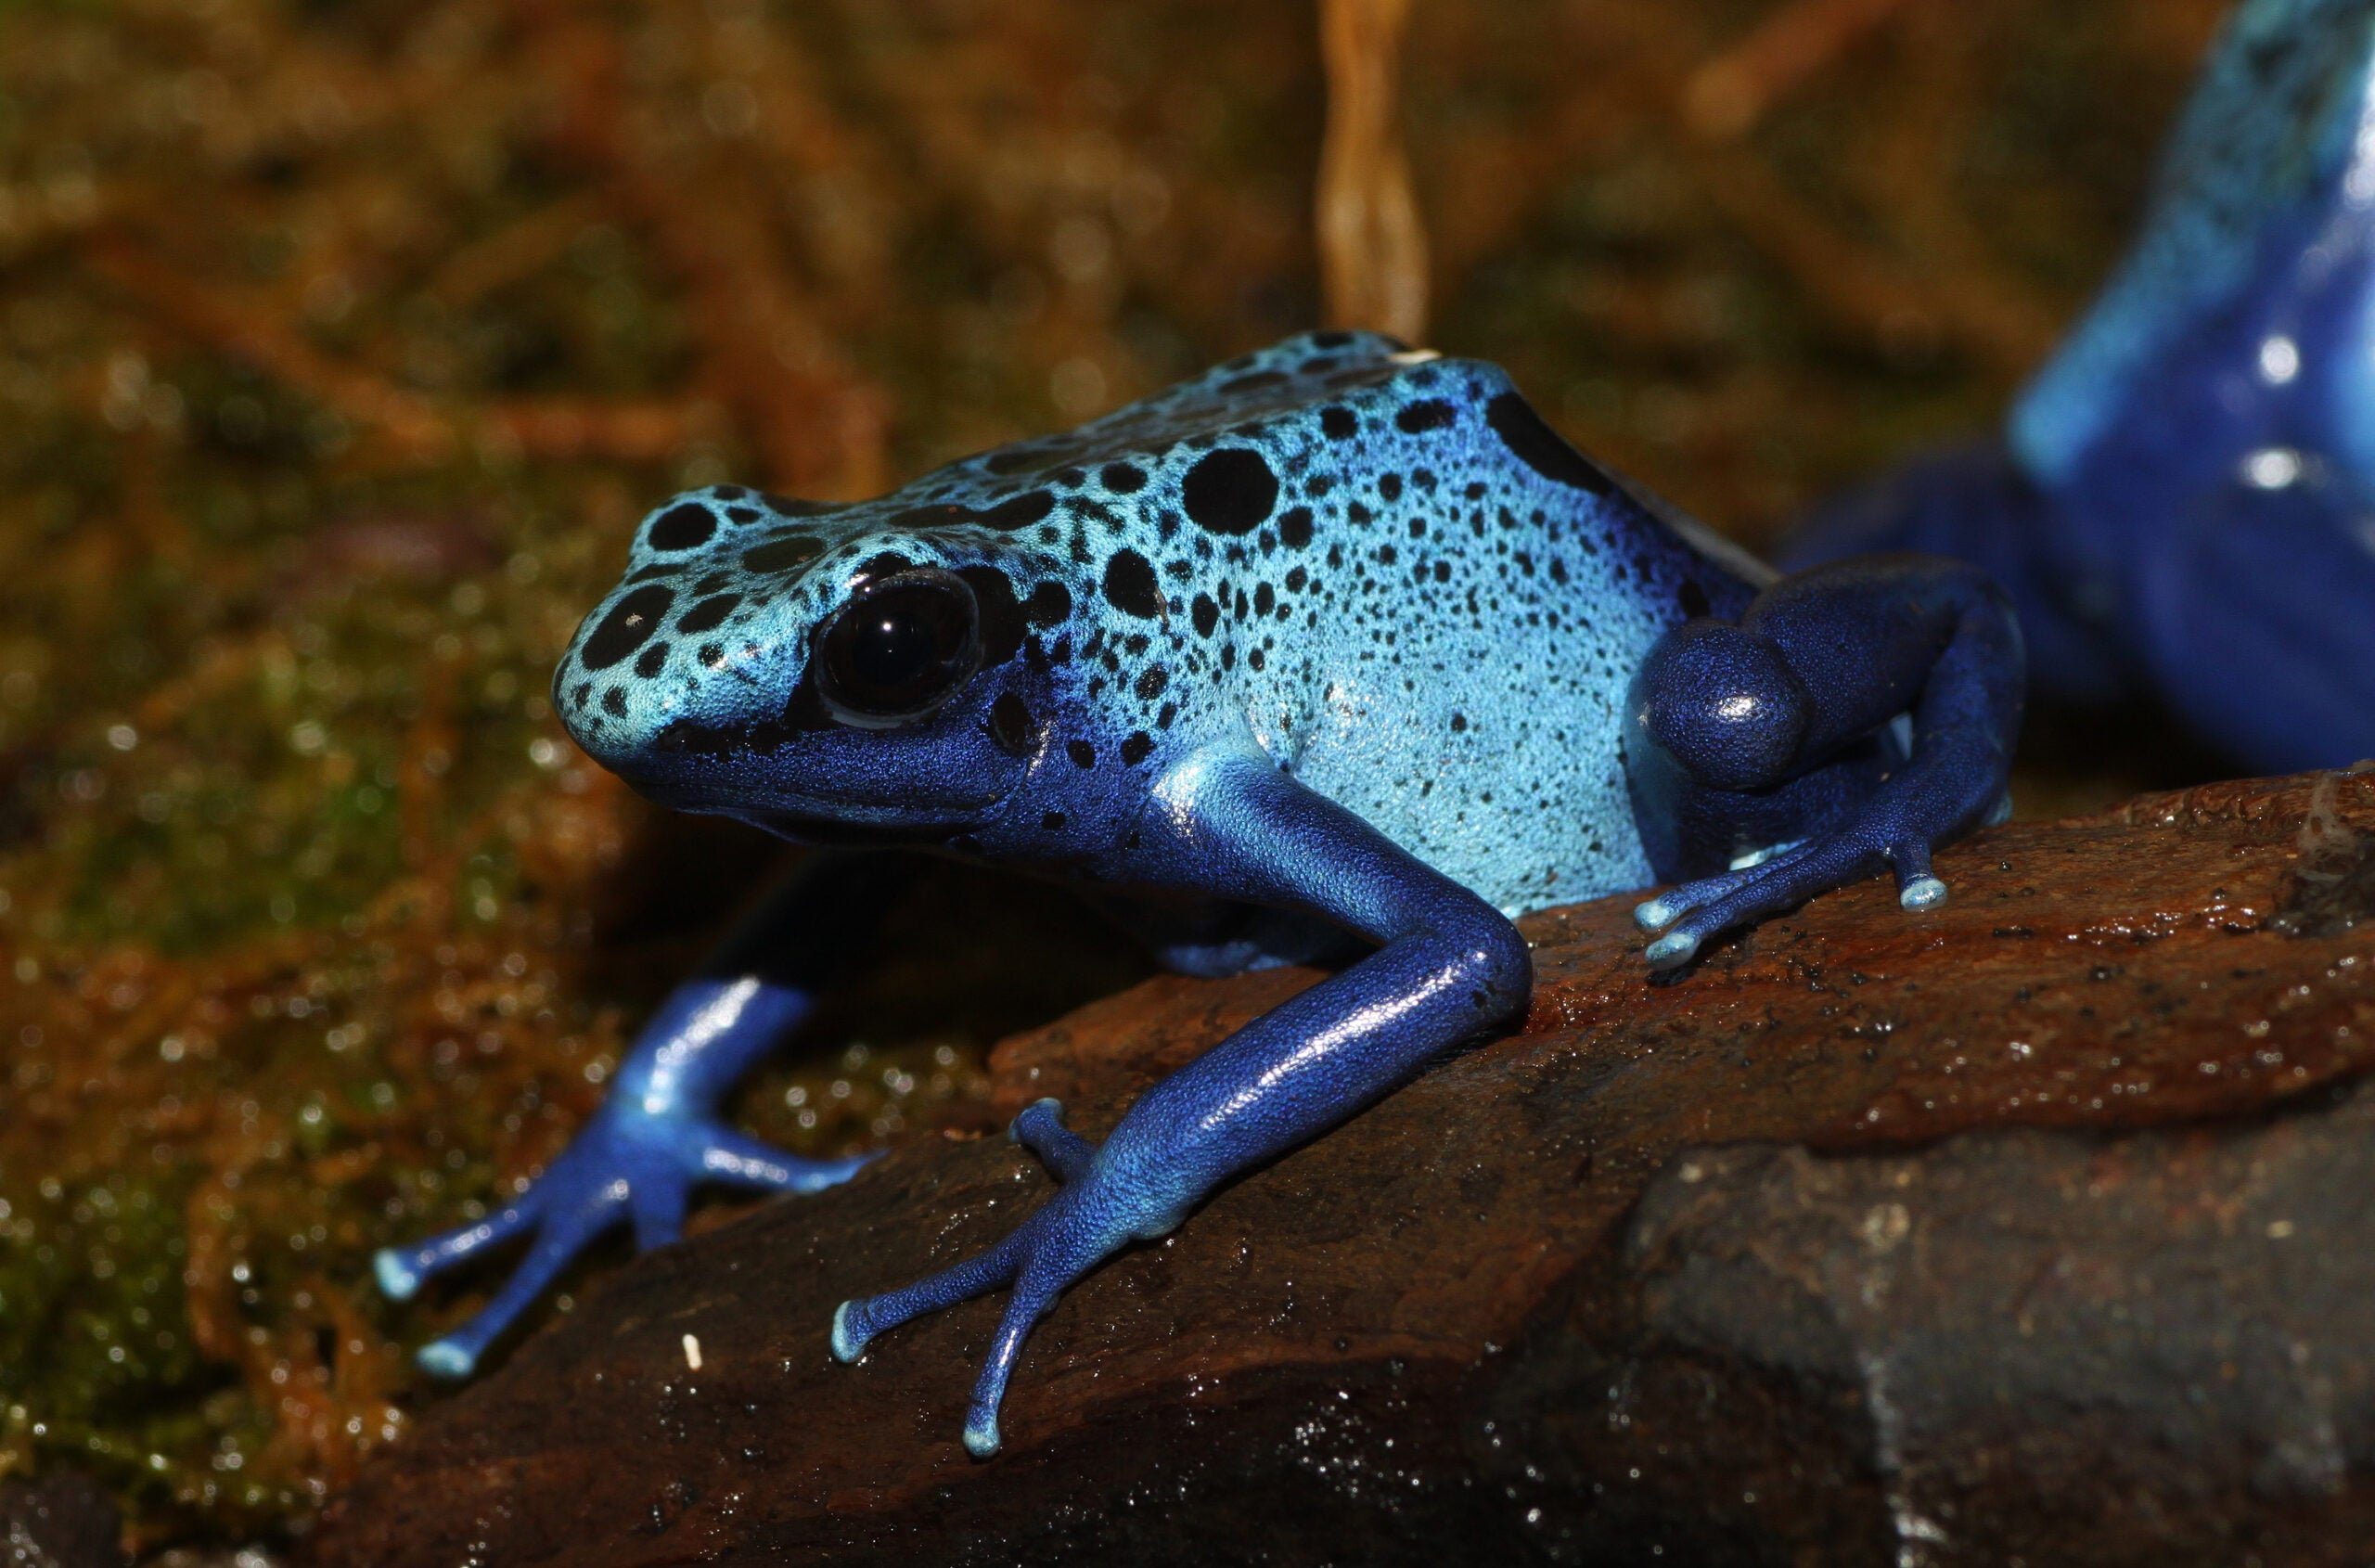 An Ice-Proof Coating For Airplanes Based On A Frog's Skin